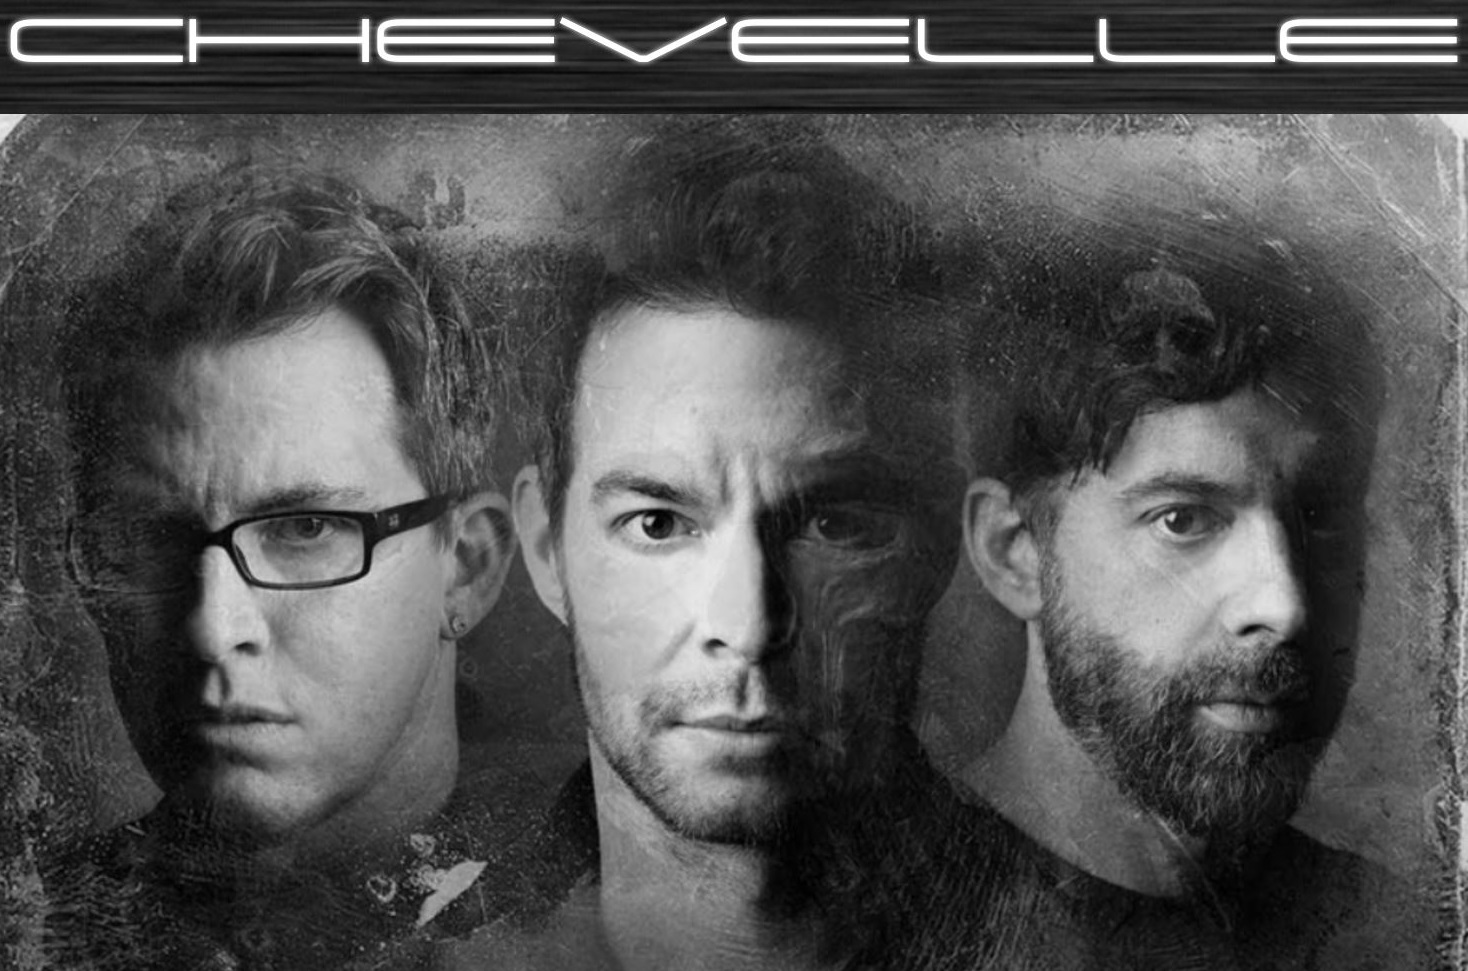 Chevelle article preview, Chevelle, alternative metal, post grunge, hard rock, Pete Loeffler, Sam Loeffler, Dean Bernardini, The North Corridor, Epic Records, Door to Door Cannibals, Enemies, Joyride (Omen), Rivers, Last Days, Young Wicked, Warhol's Showbiz, Punchline, Got Burned, A Miracle, Shot from A Cannon, Chevelle's new album.